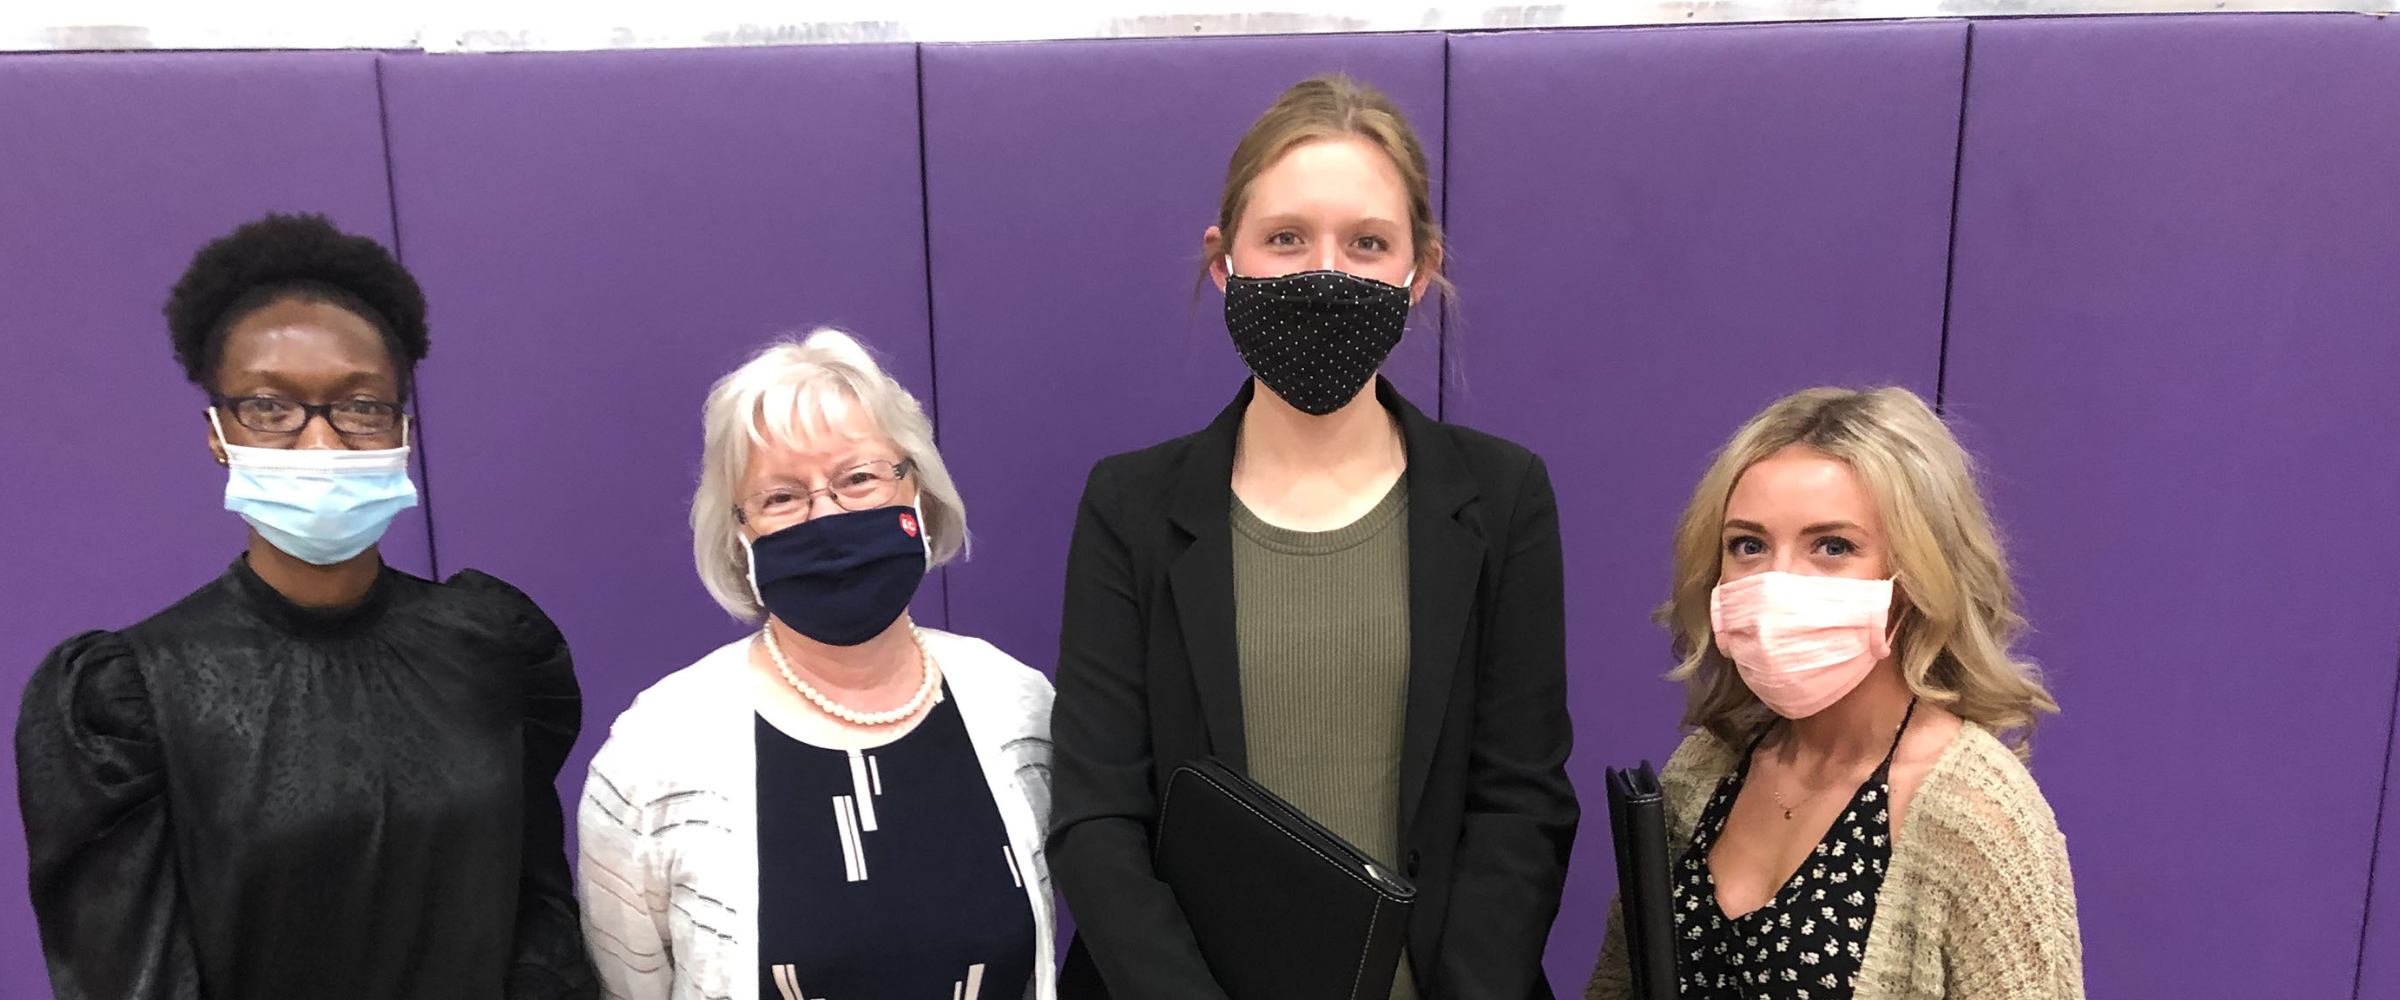 Four women posed in-line with masks on